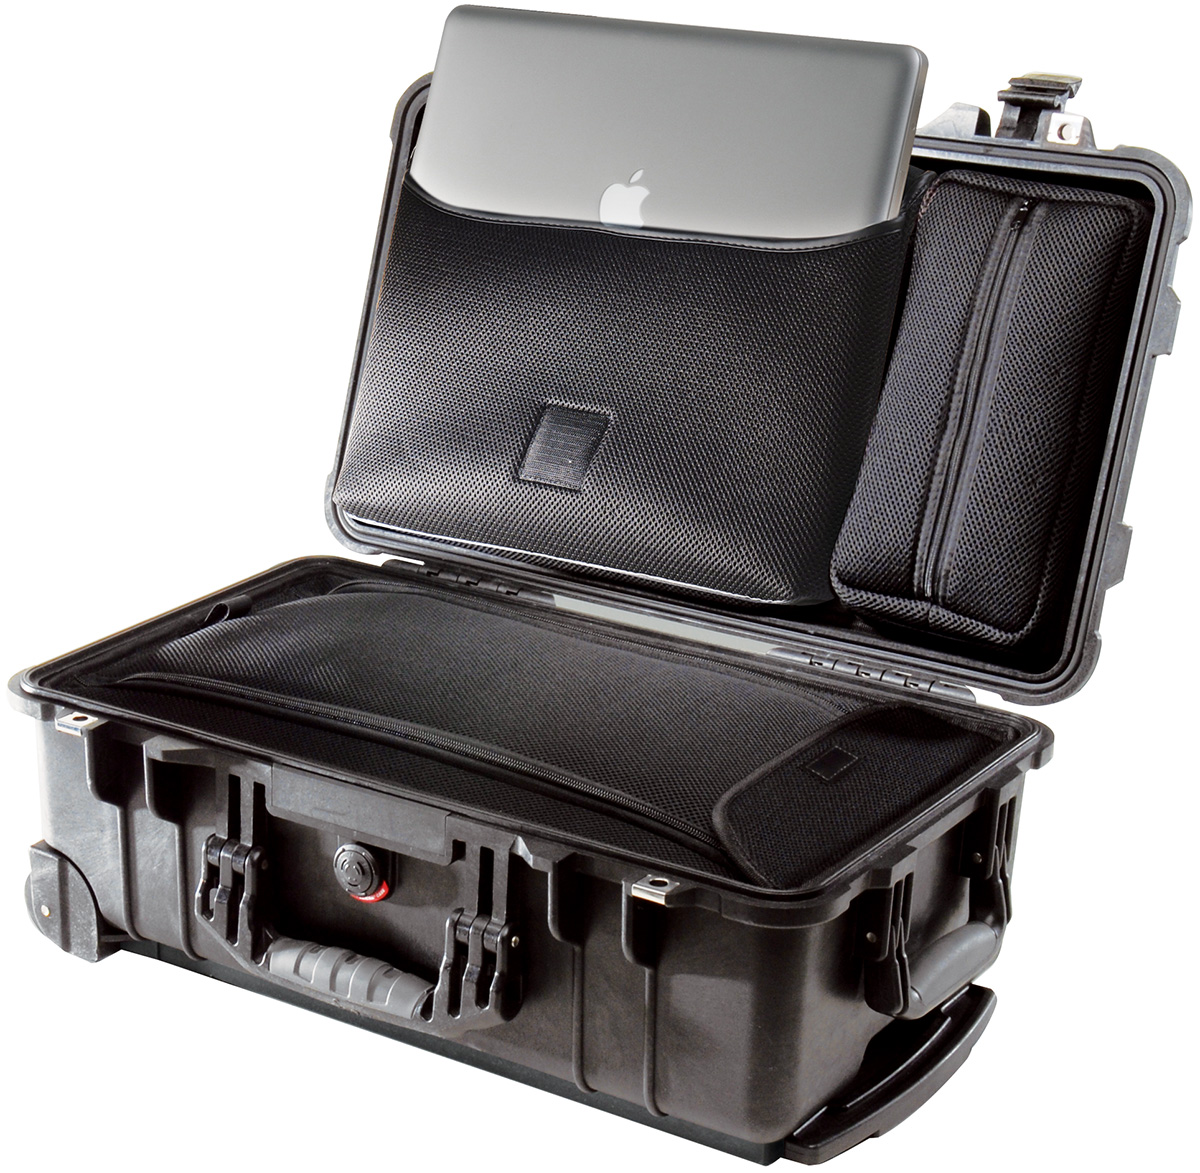 pelican peli products 1510LOC hard suitcase travel macbook case